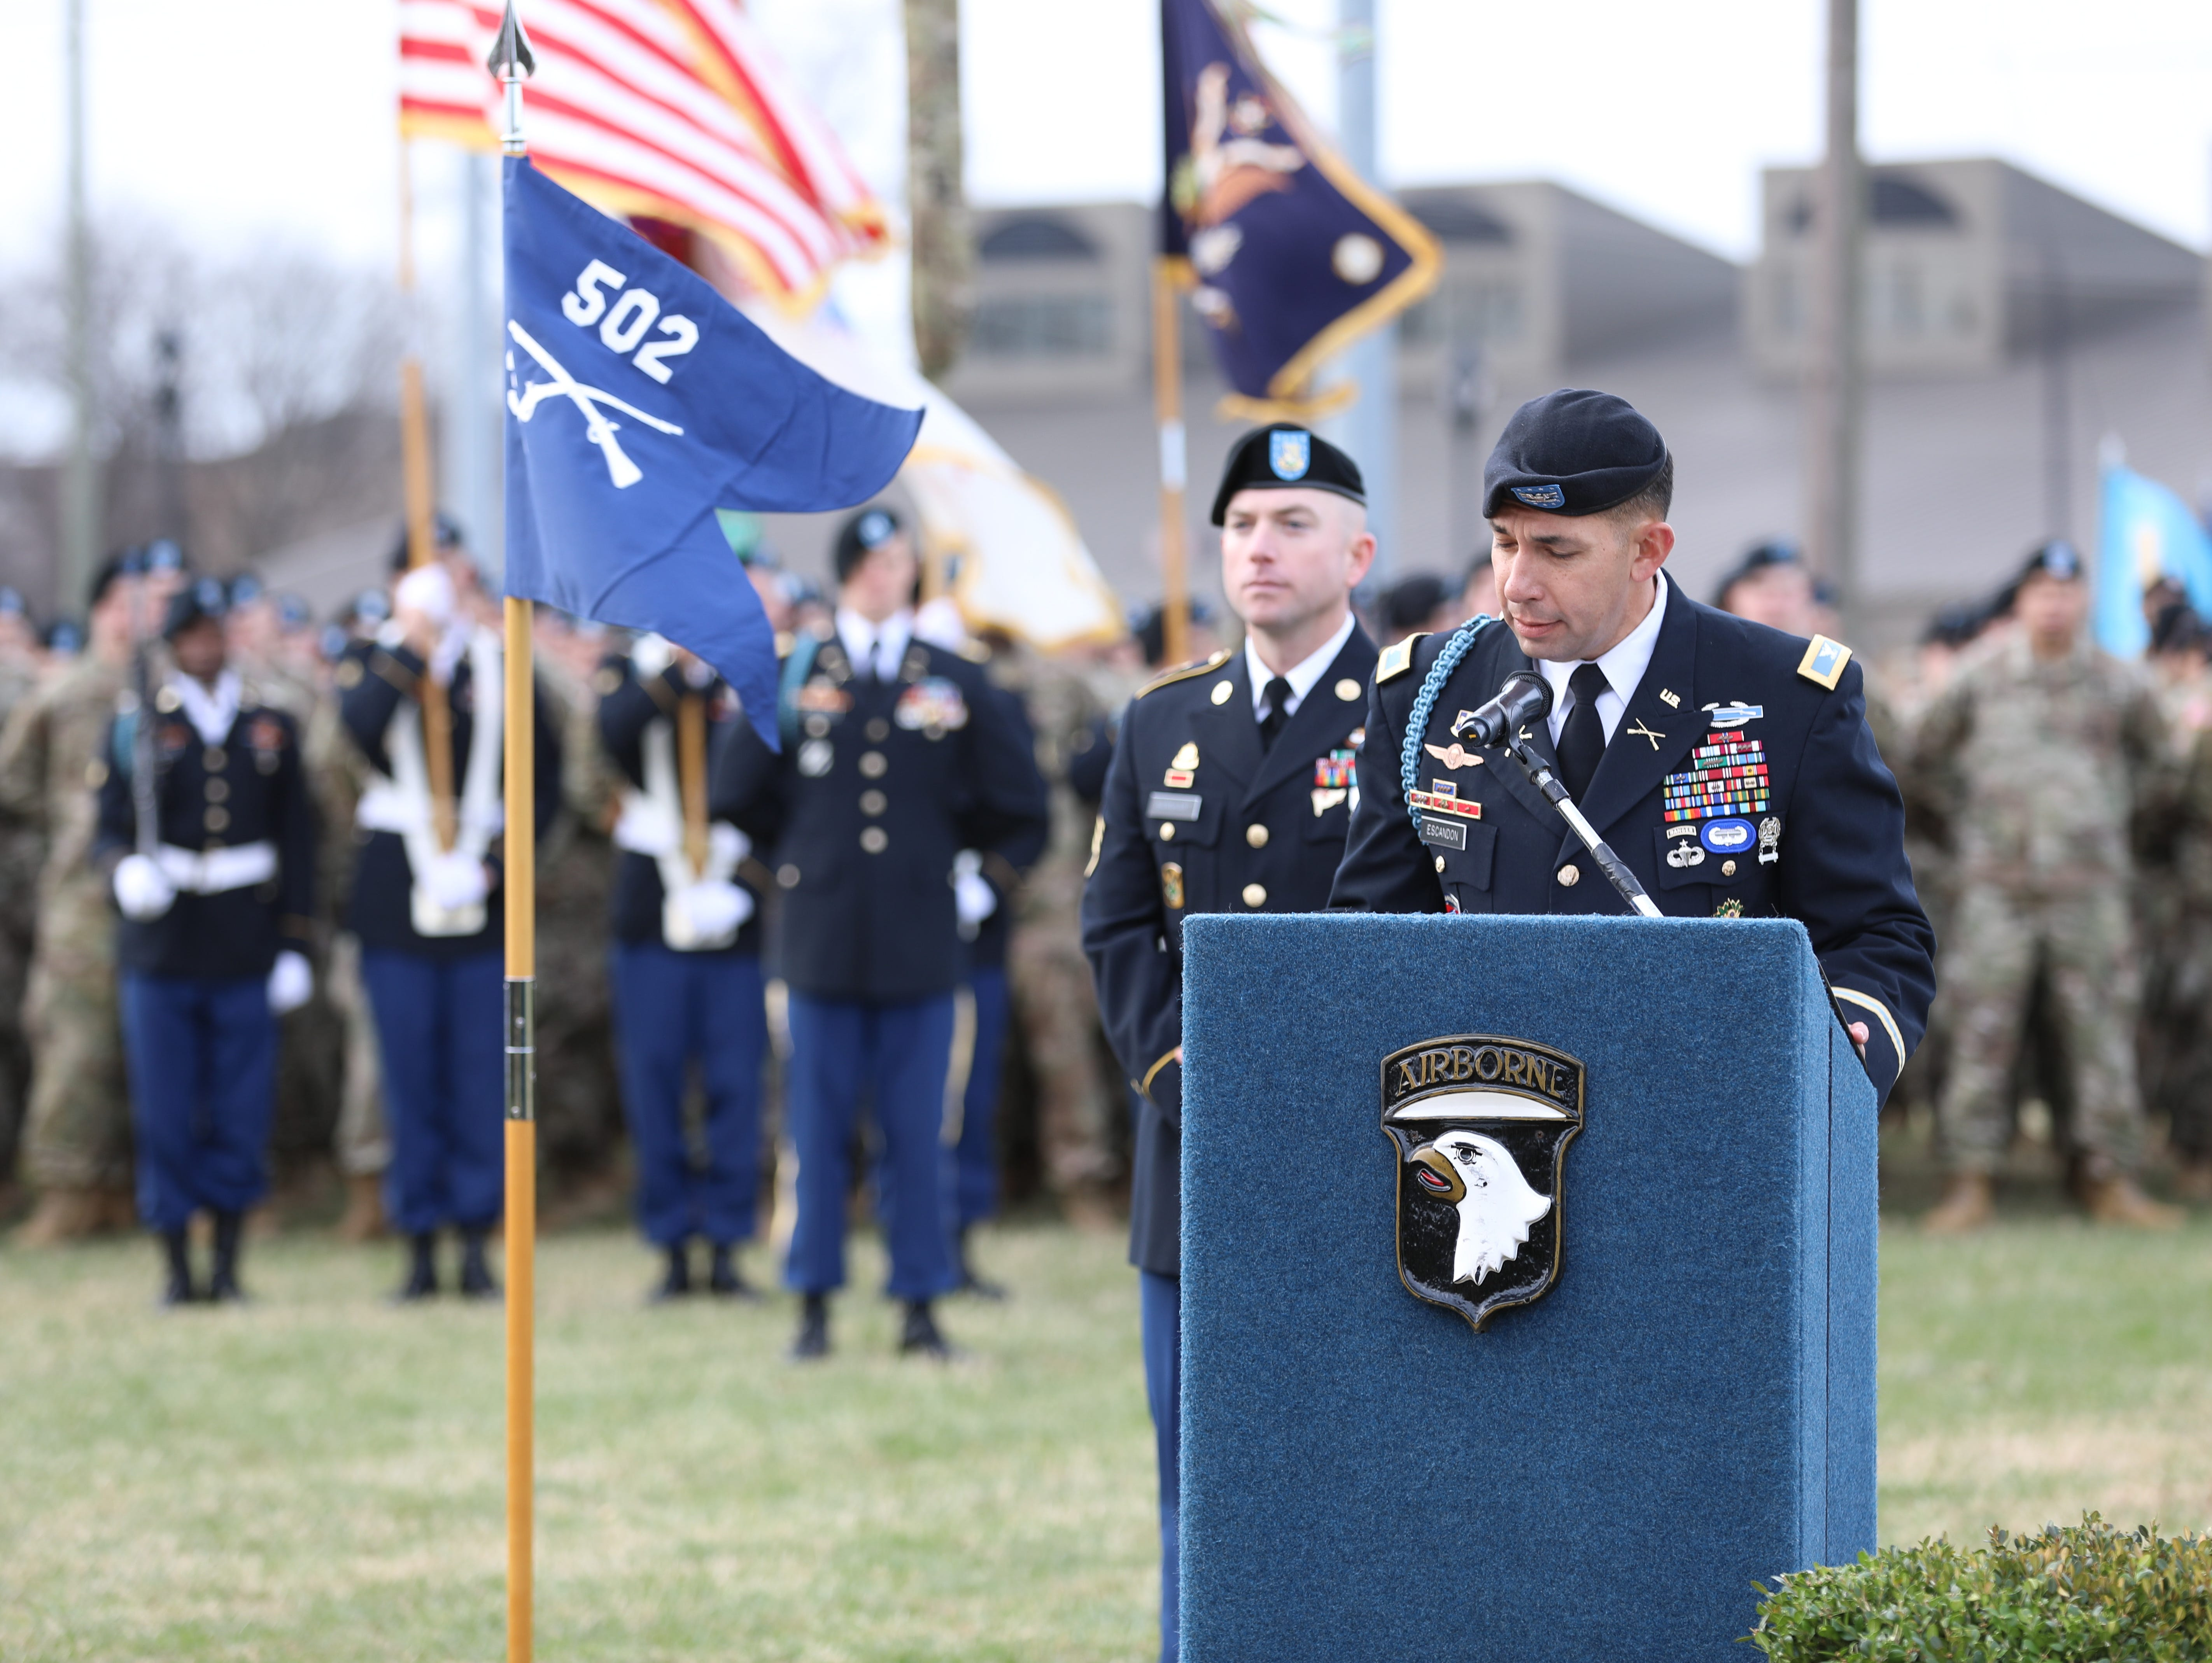 Staff Sgt. Jerald Burnhart (left) interduces Col. Joseph Escandon (right), as he gives his speech at the Gander Memorial at Fort Campbell, KY Dec. 12, 2018.